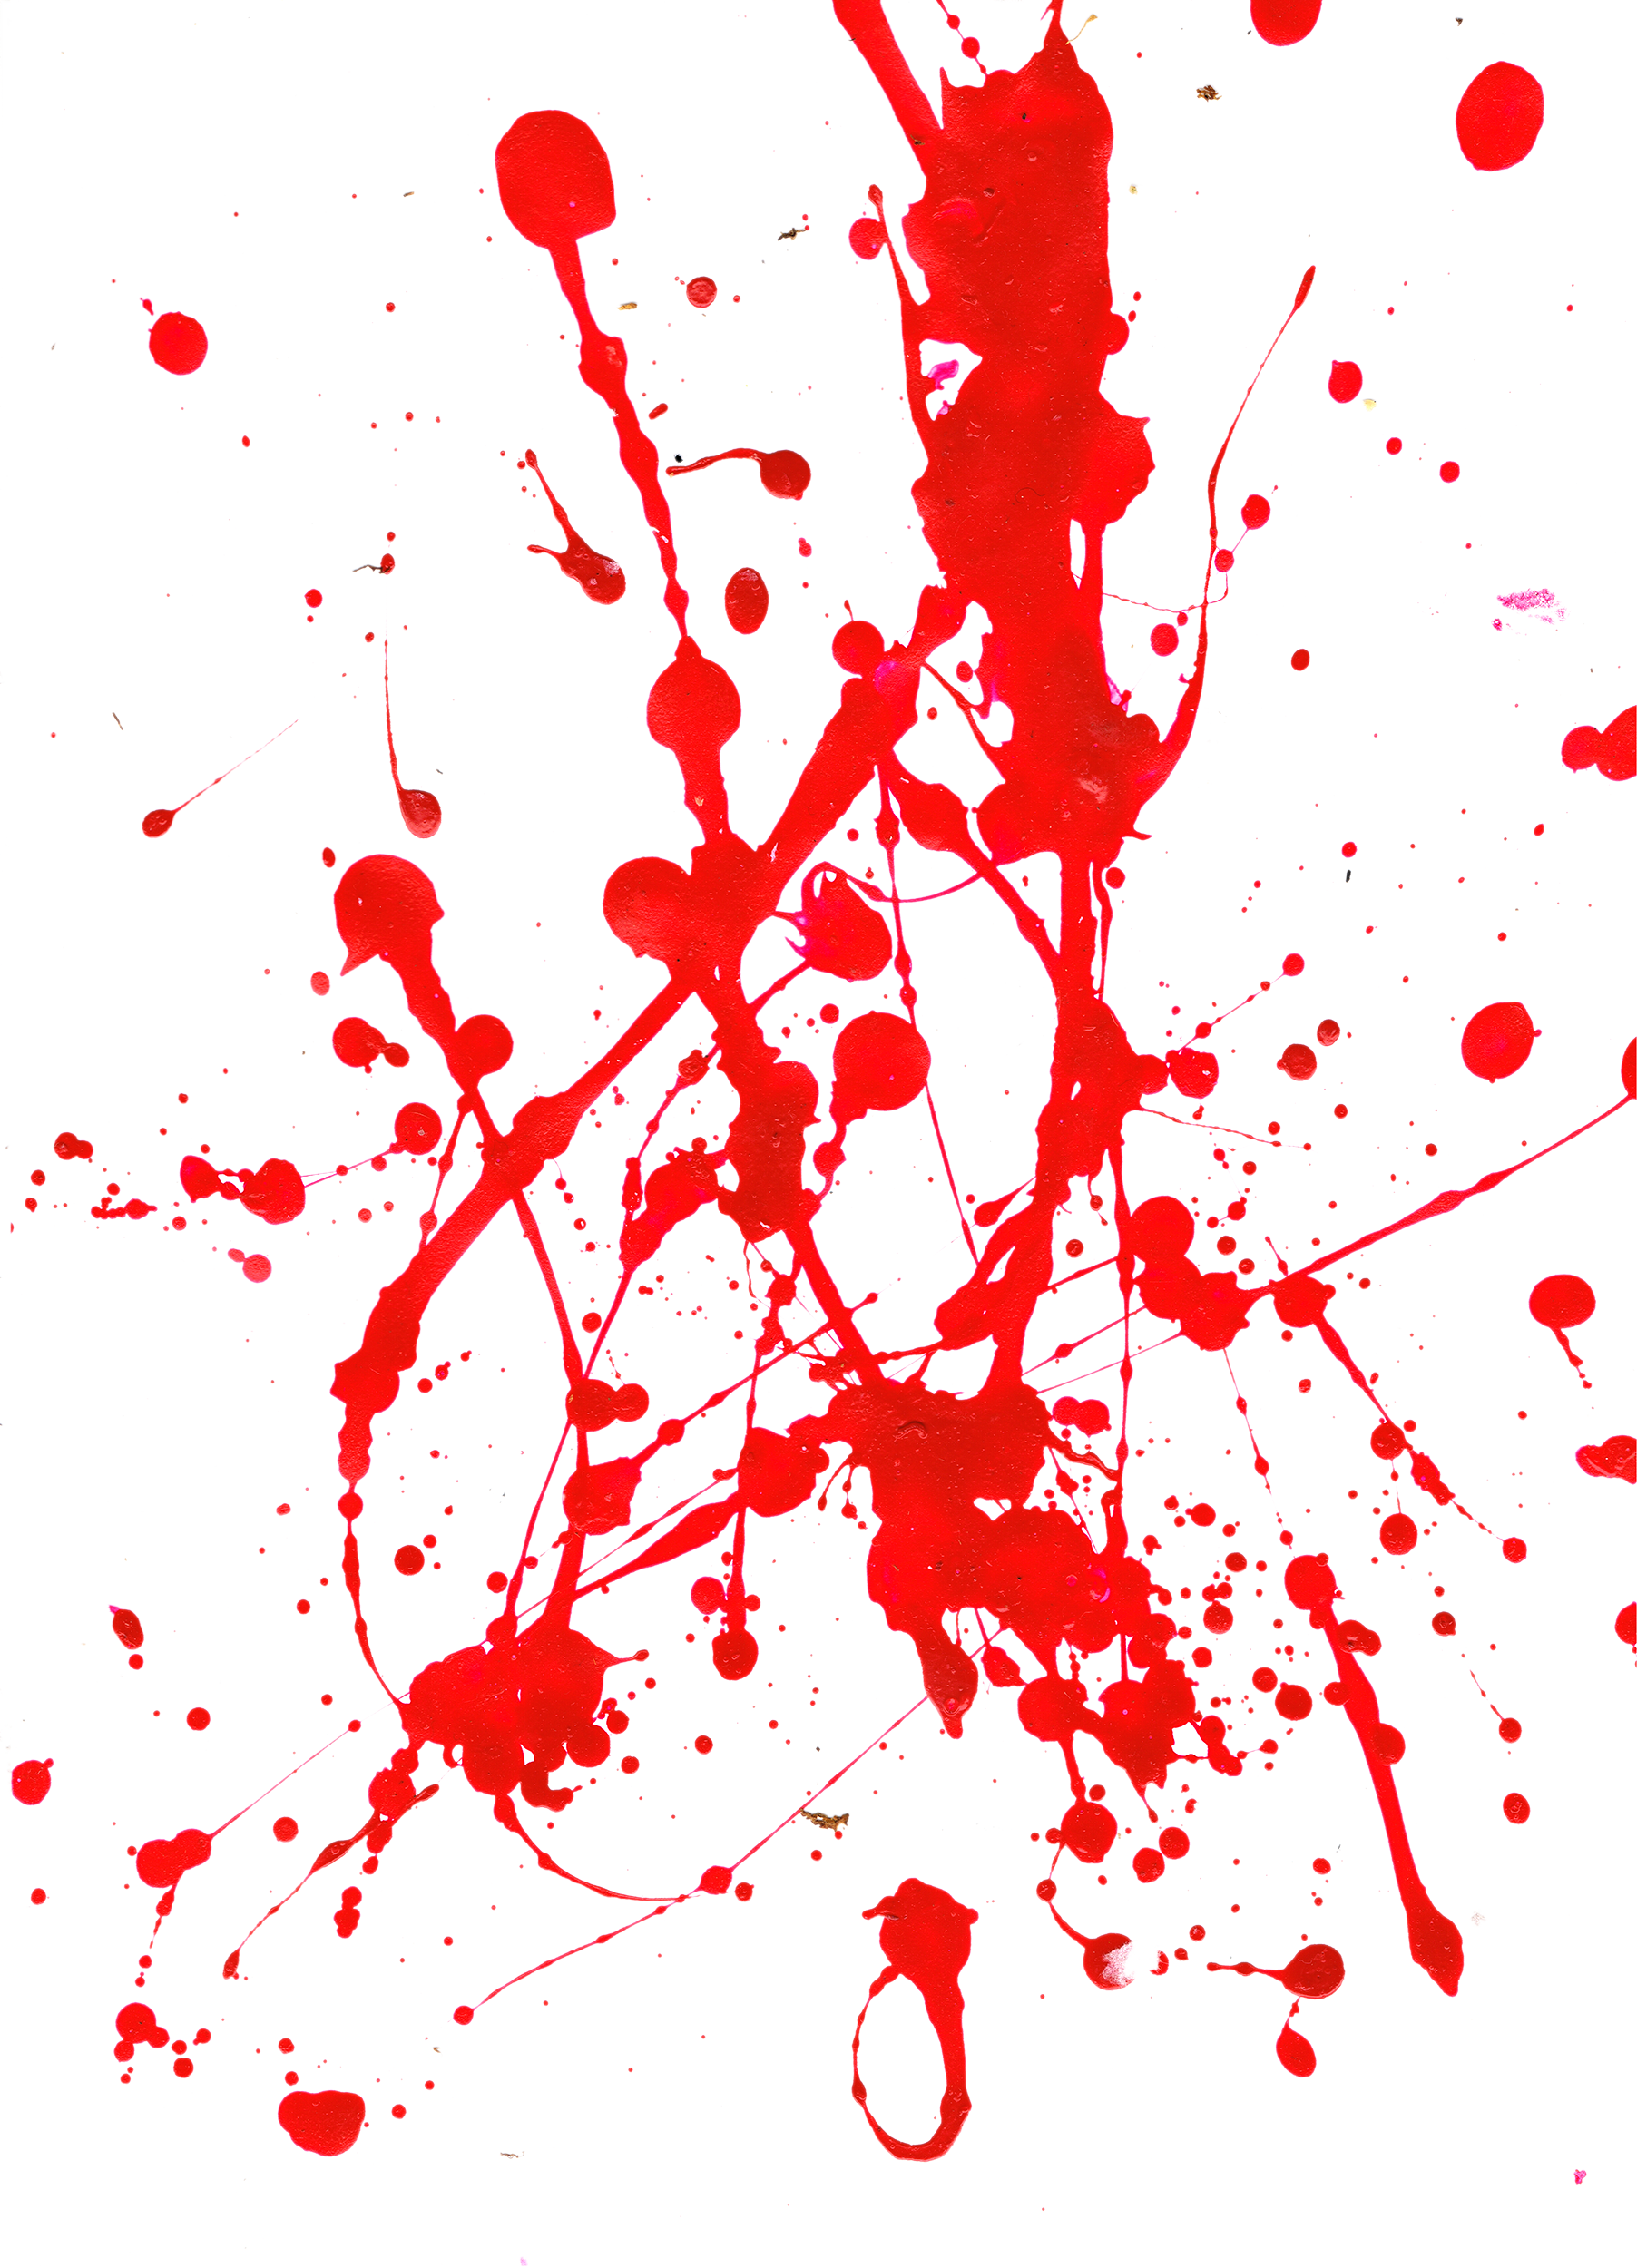 Paint Splatter 4 U by AbsurdWordPreferred